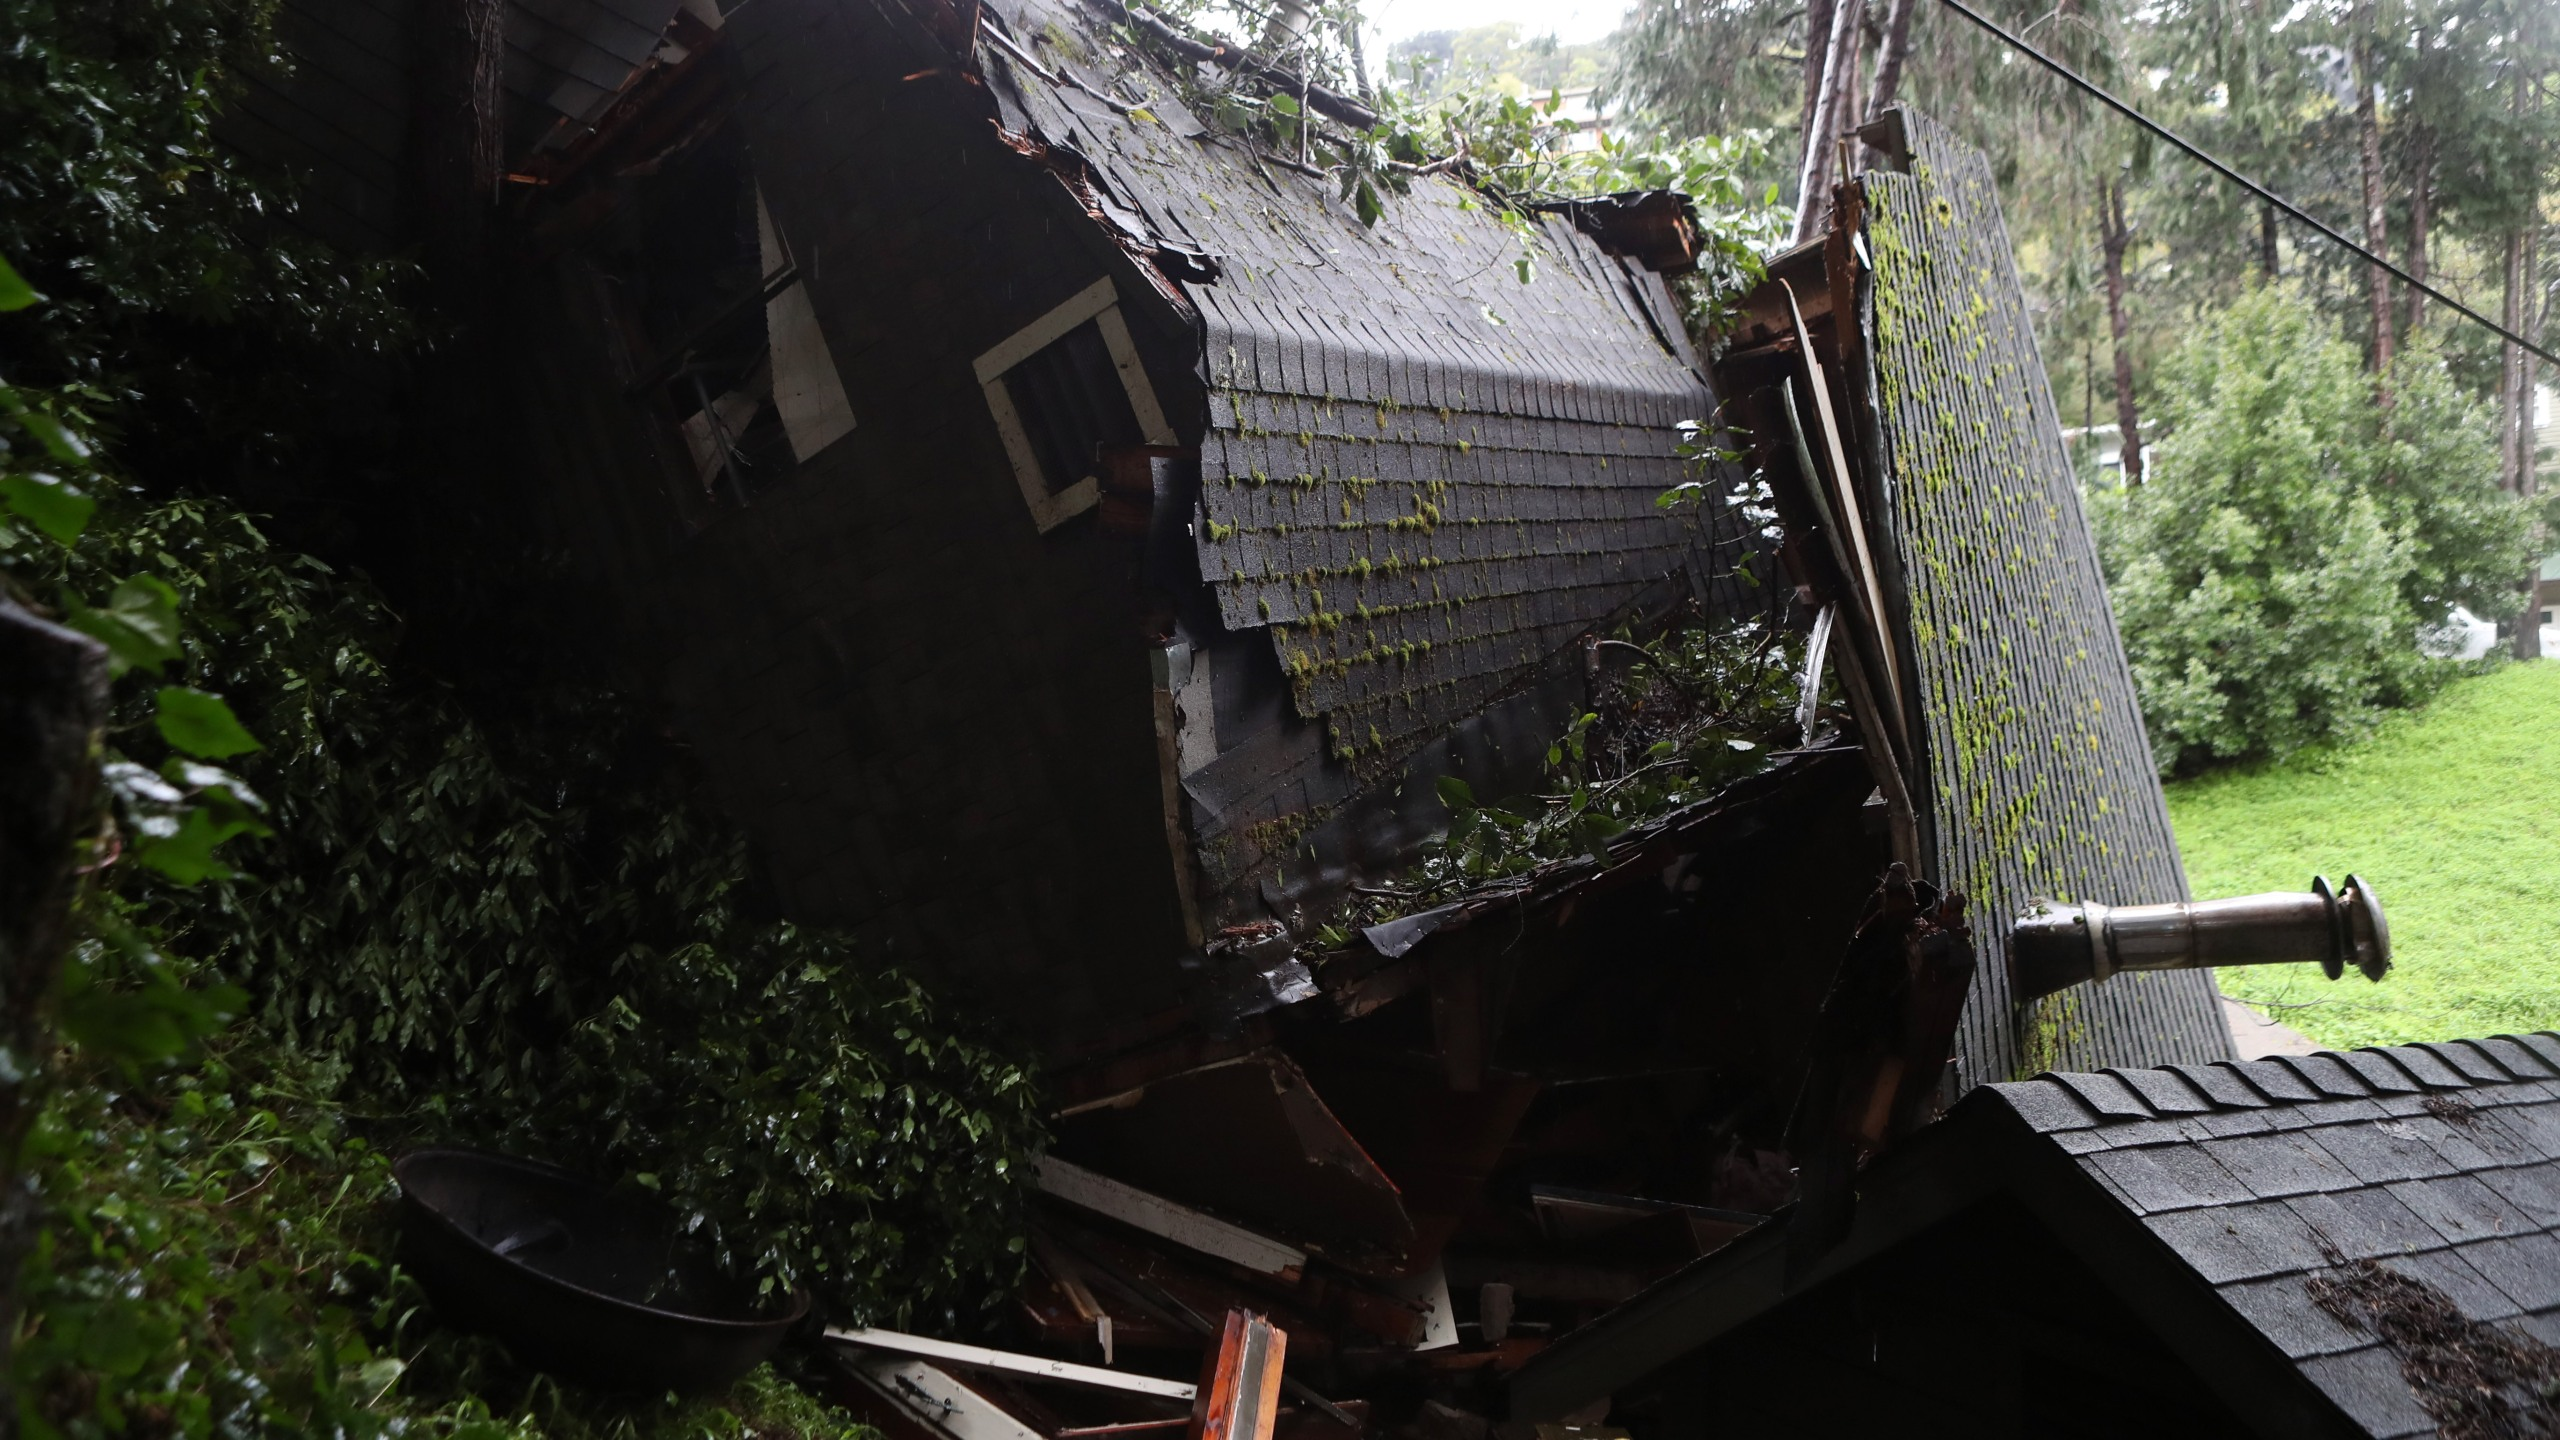 A view of a home that was swept down a hill by a mudslide during a rain storm on February 14, 2019 in Sausalito, California. (Credit: Justin Sullivan/Getty Images)